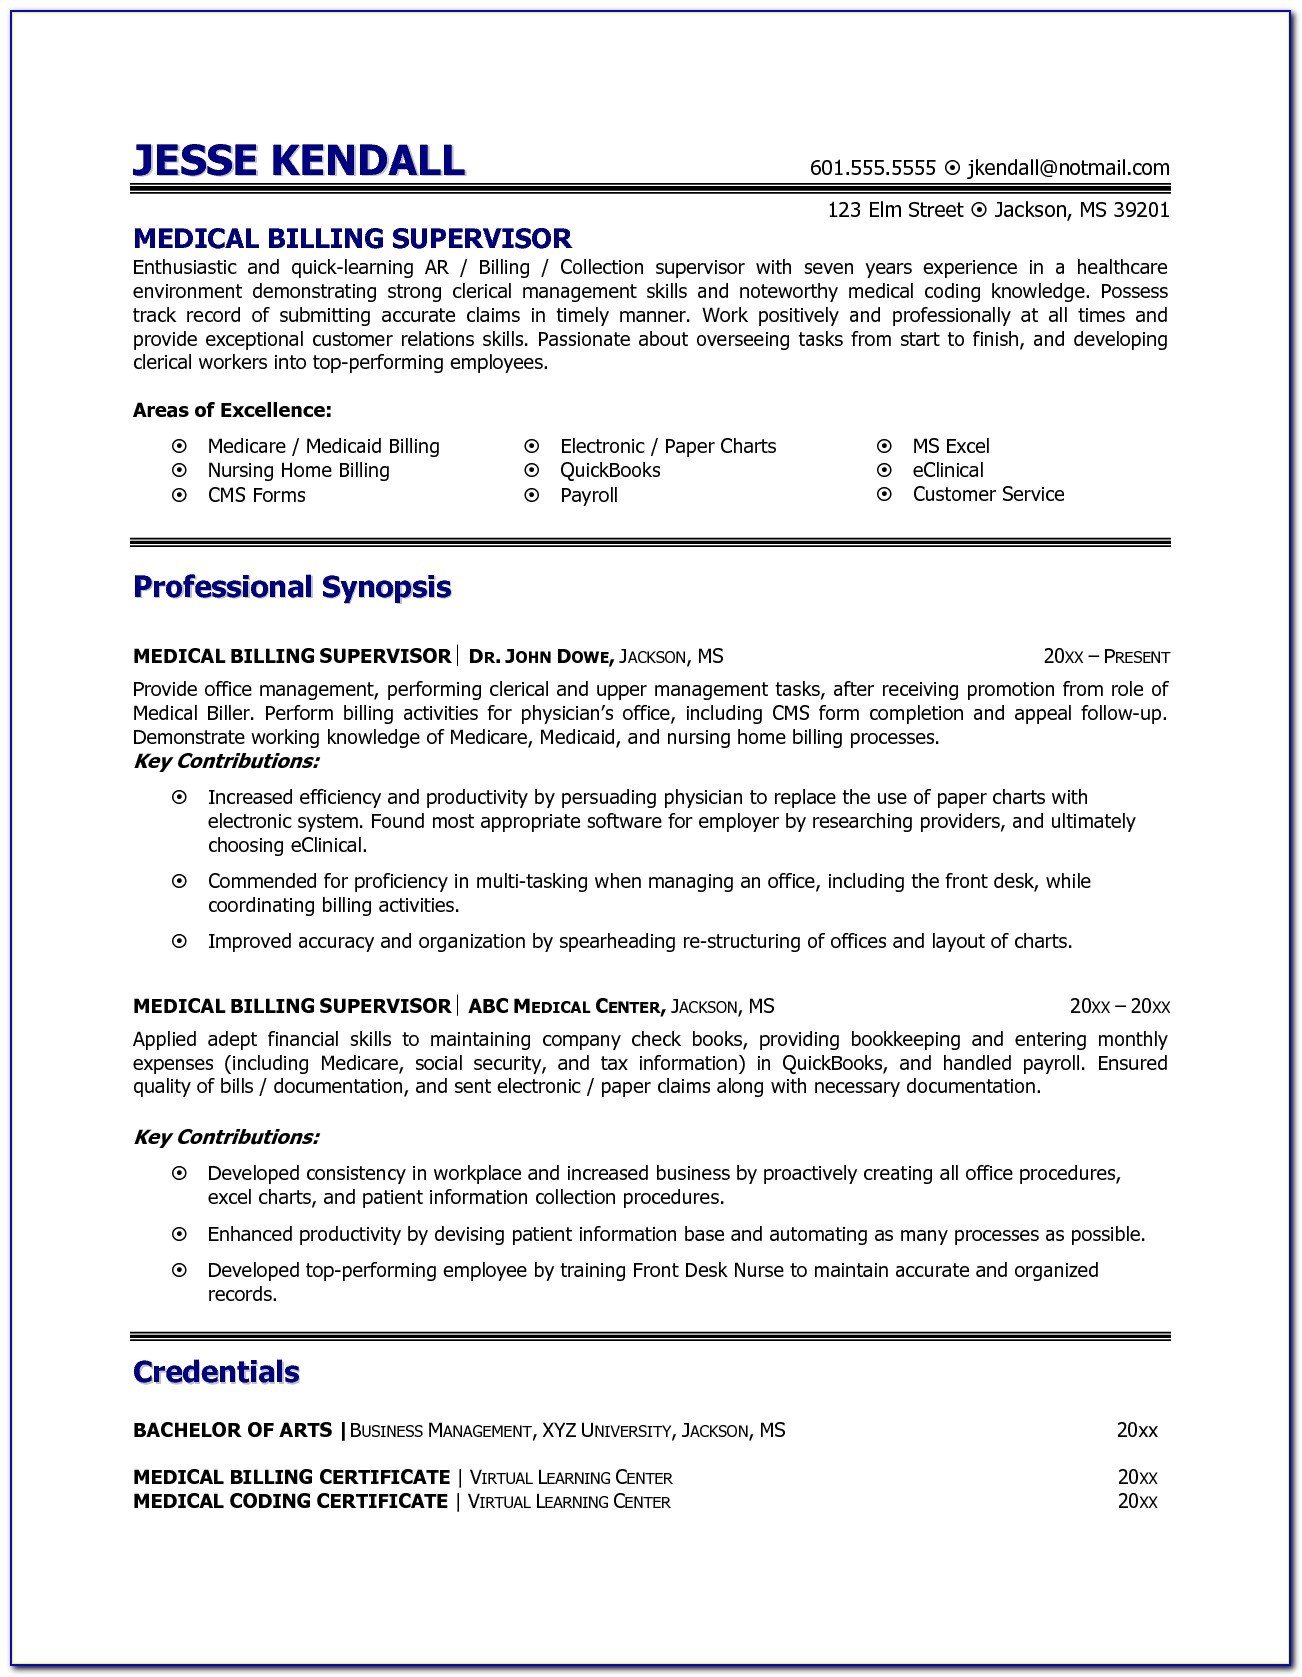 resume examples for medical billing and coding vincegray2014 sample student sheet metal Resume Sample Resume For Medical Billing And Coding Student